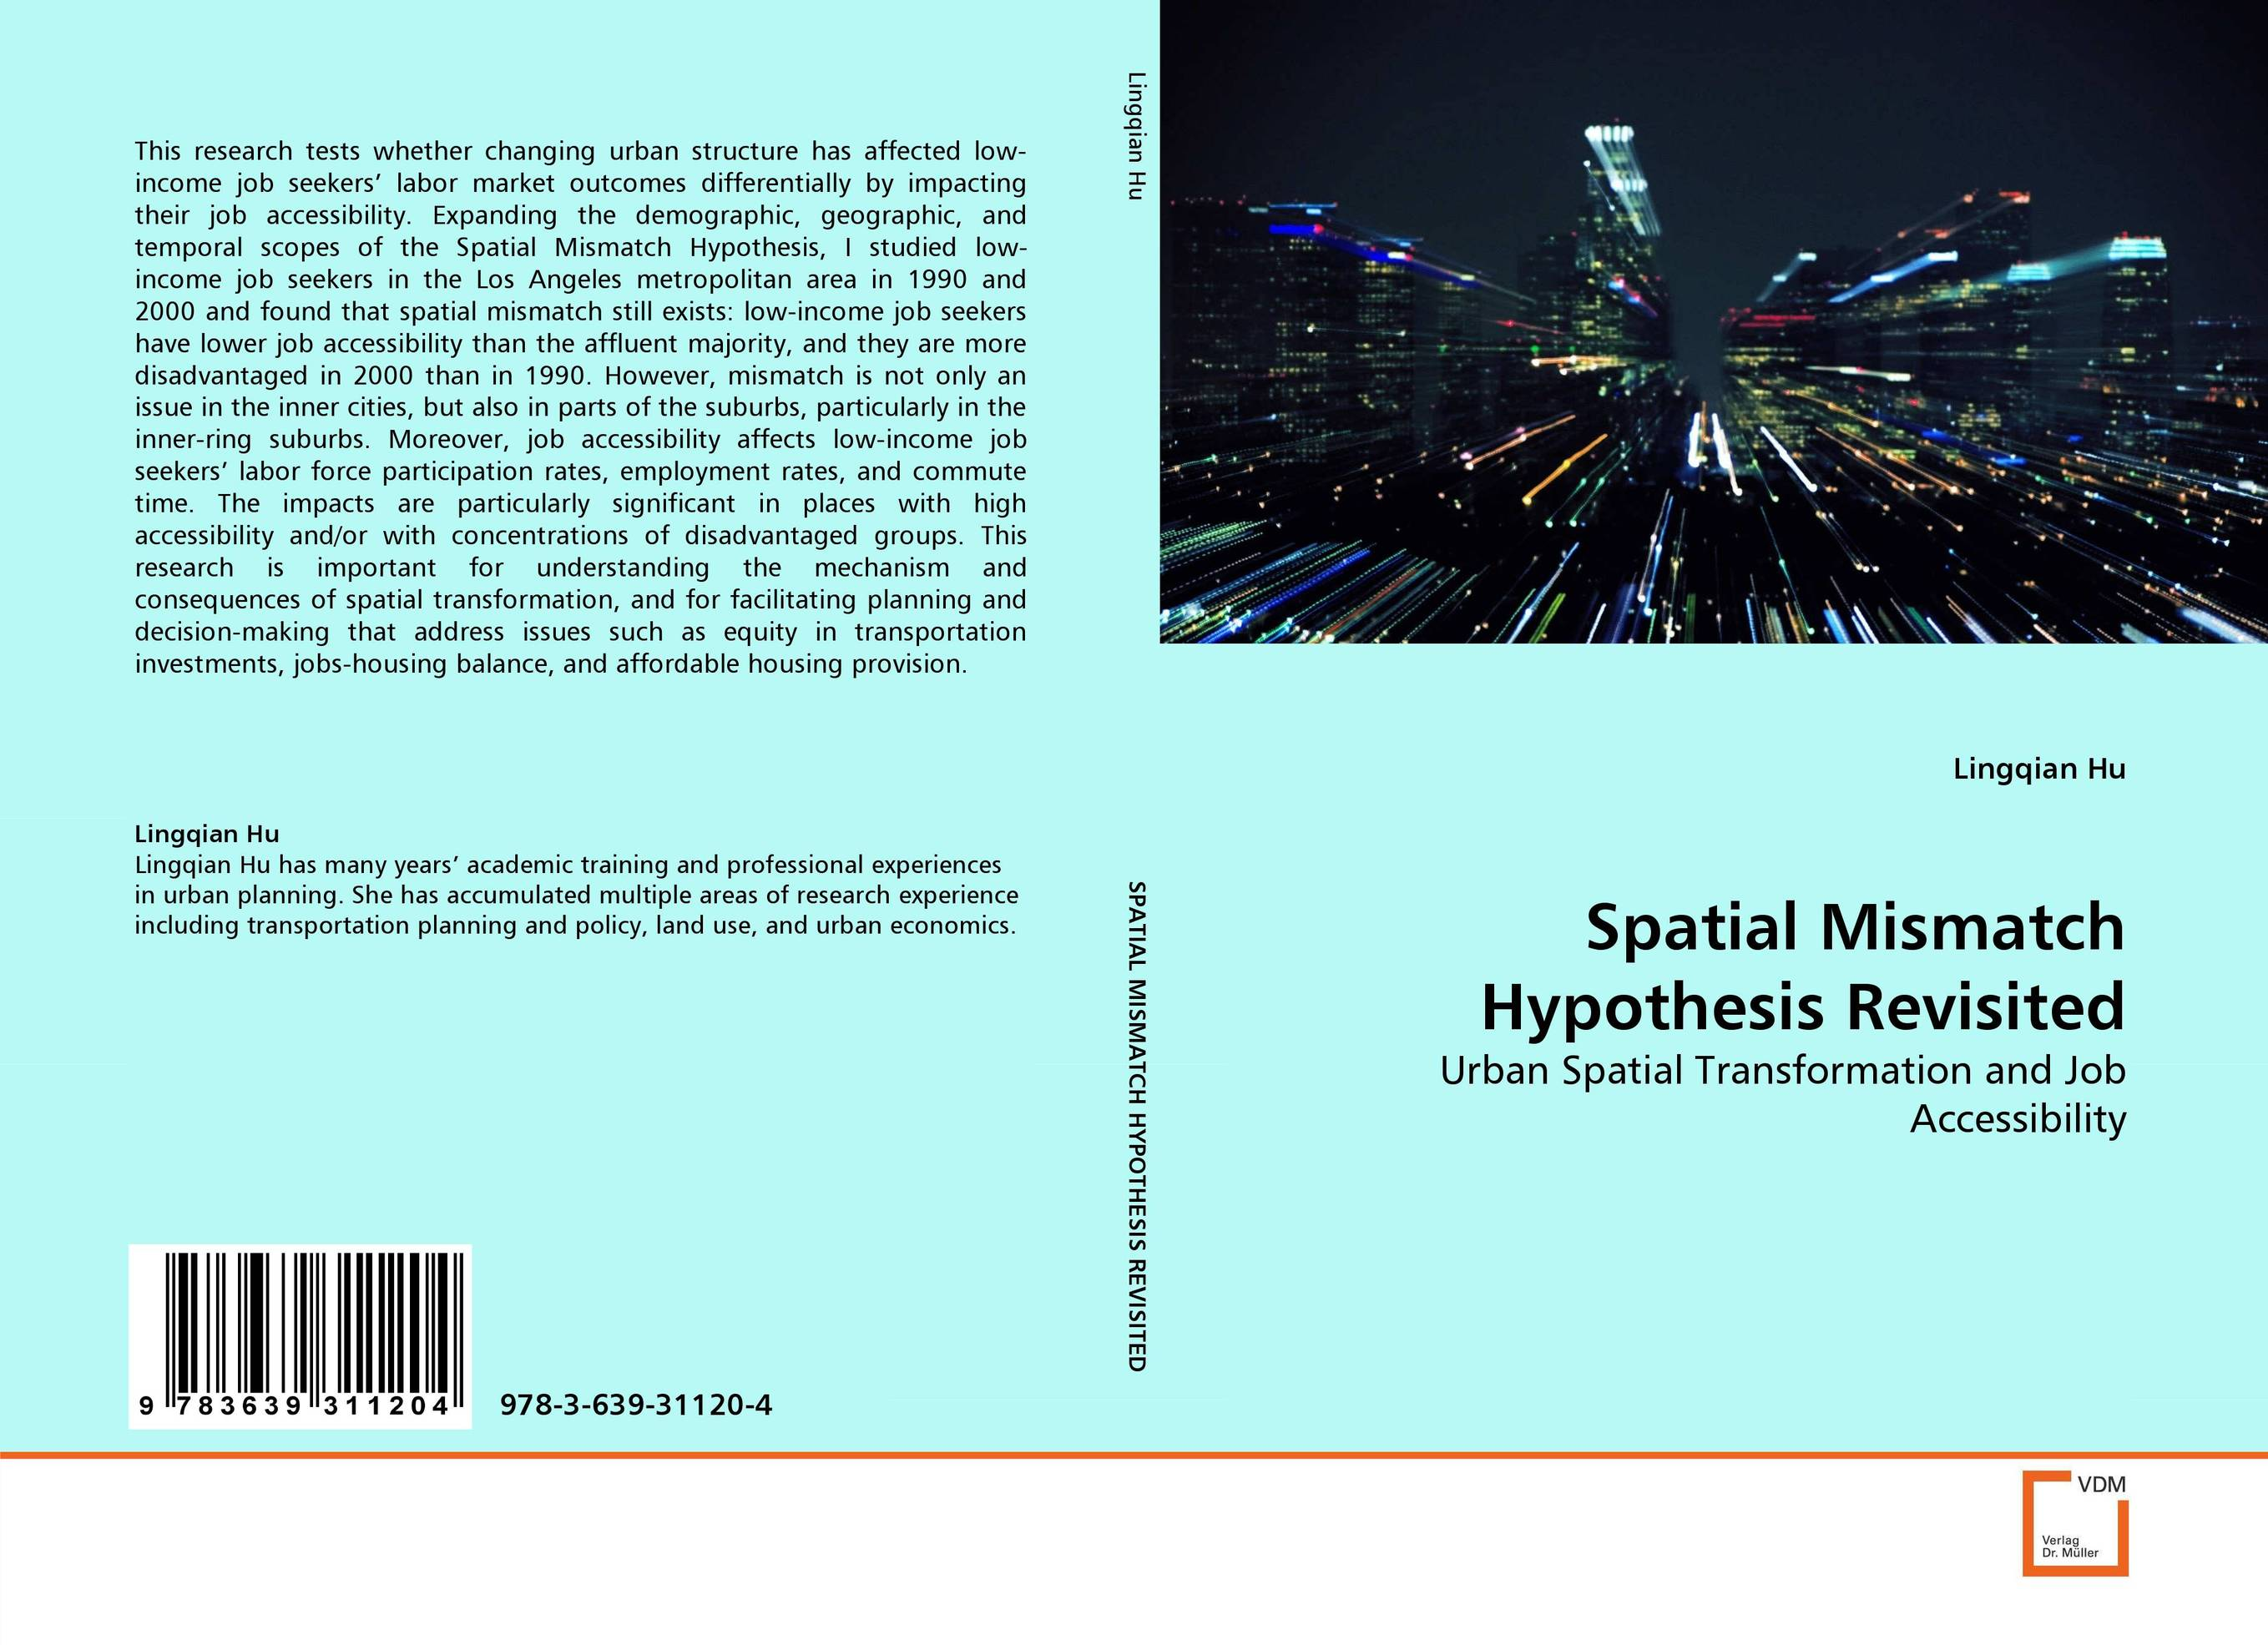 Spatial Mismatch Hypothesis Revisited land tenure housing and low income earners